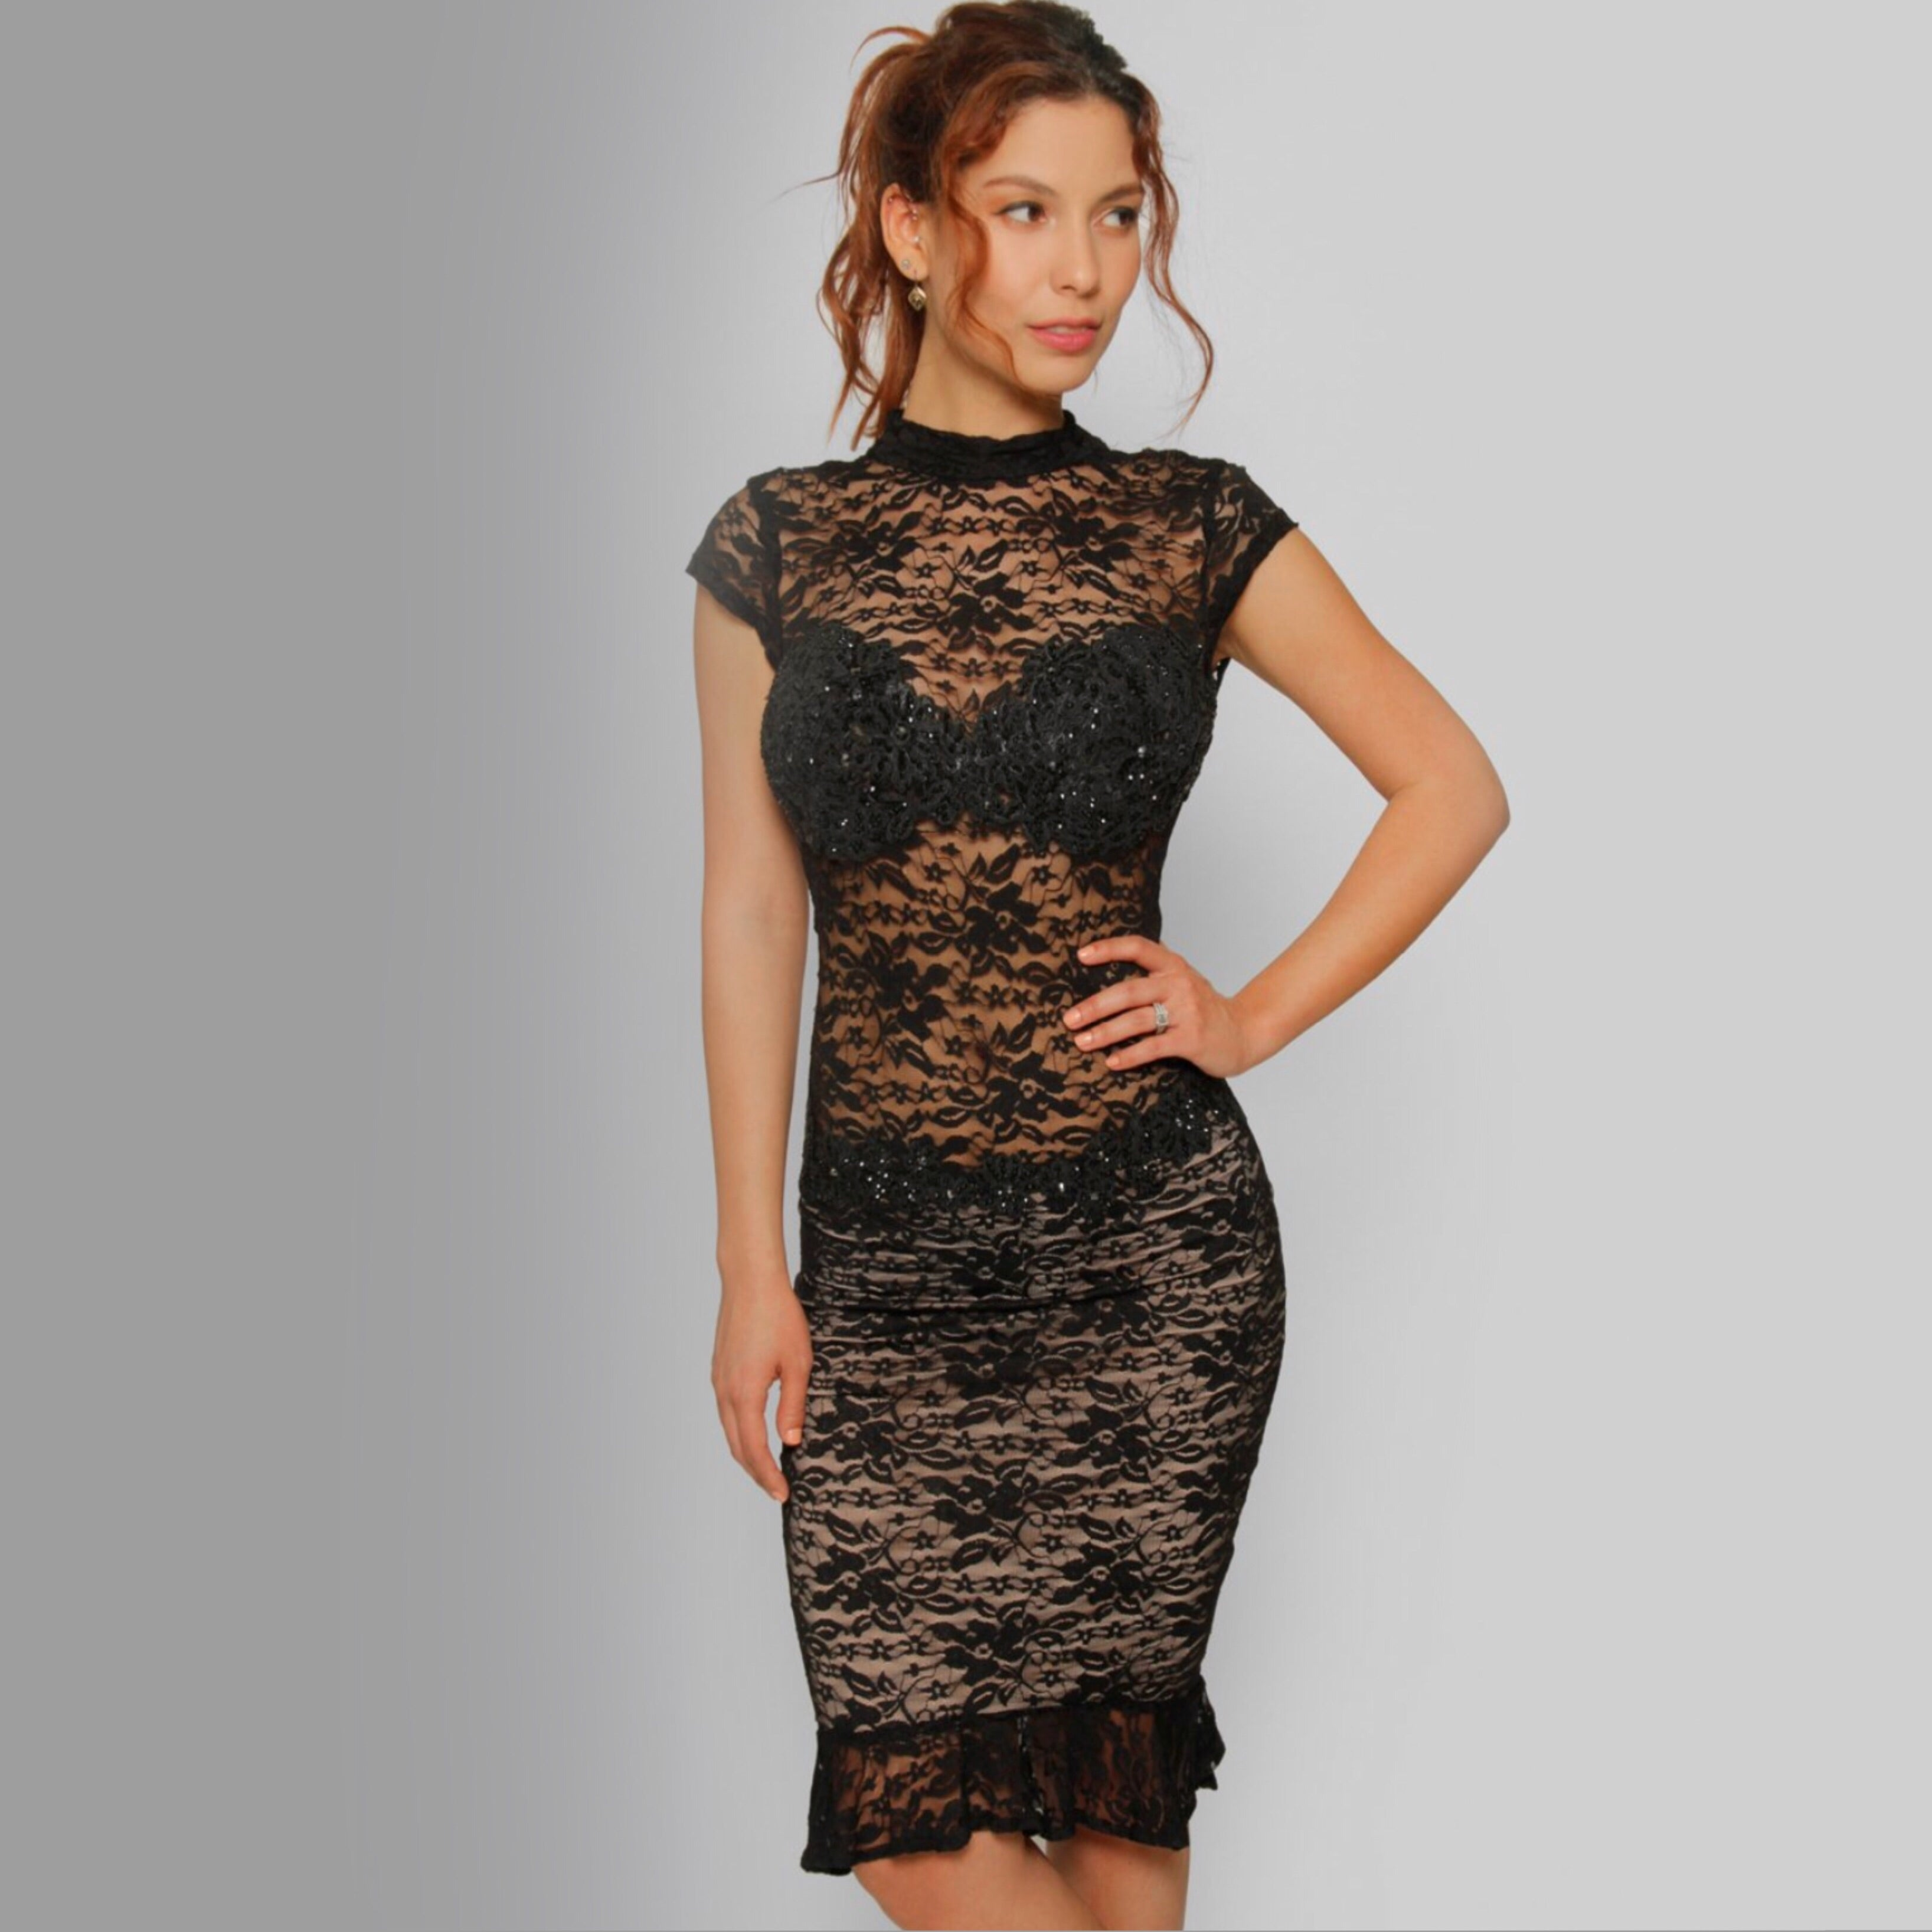 Turtle Neck Lace Dress Swarovski crystals - Claudio Milano couture